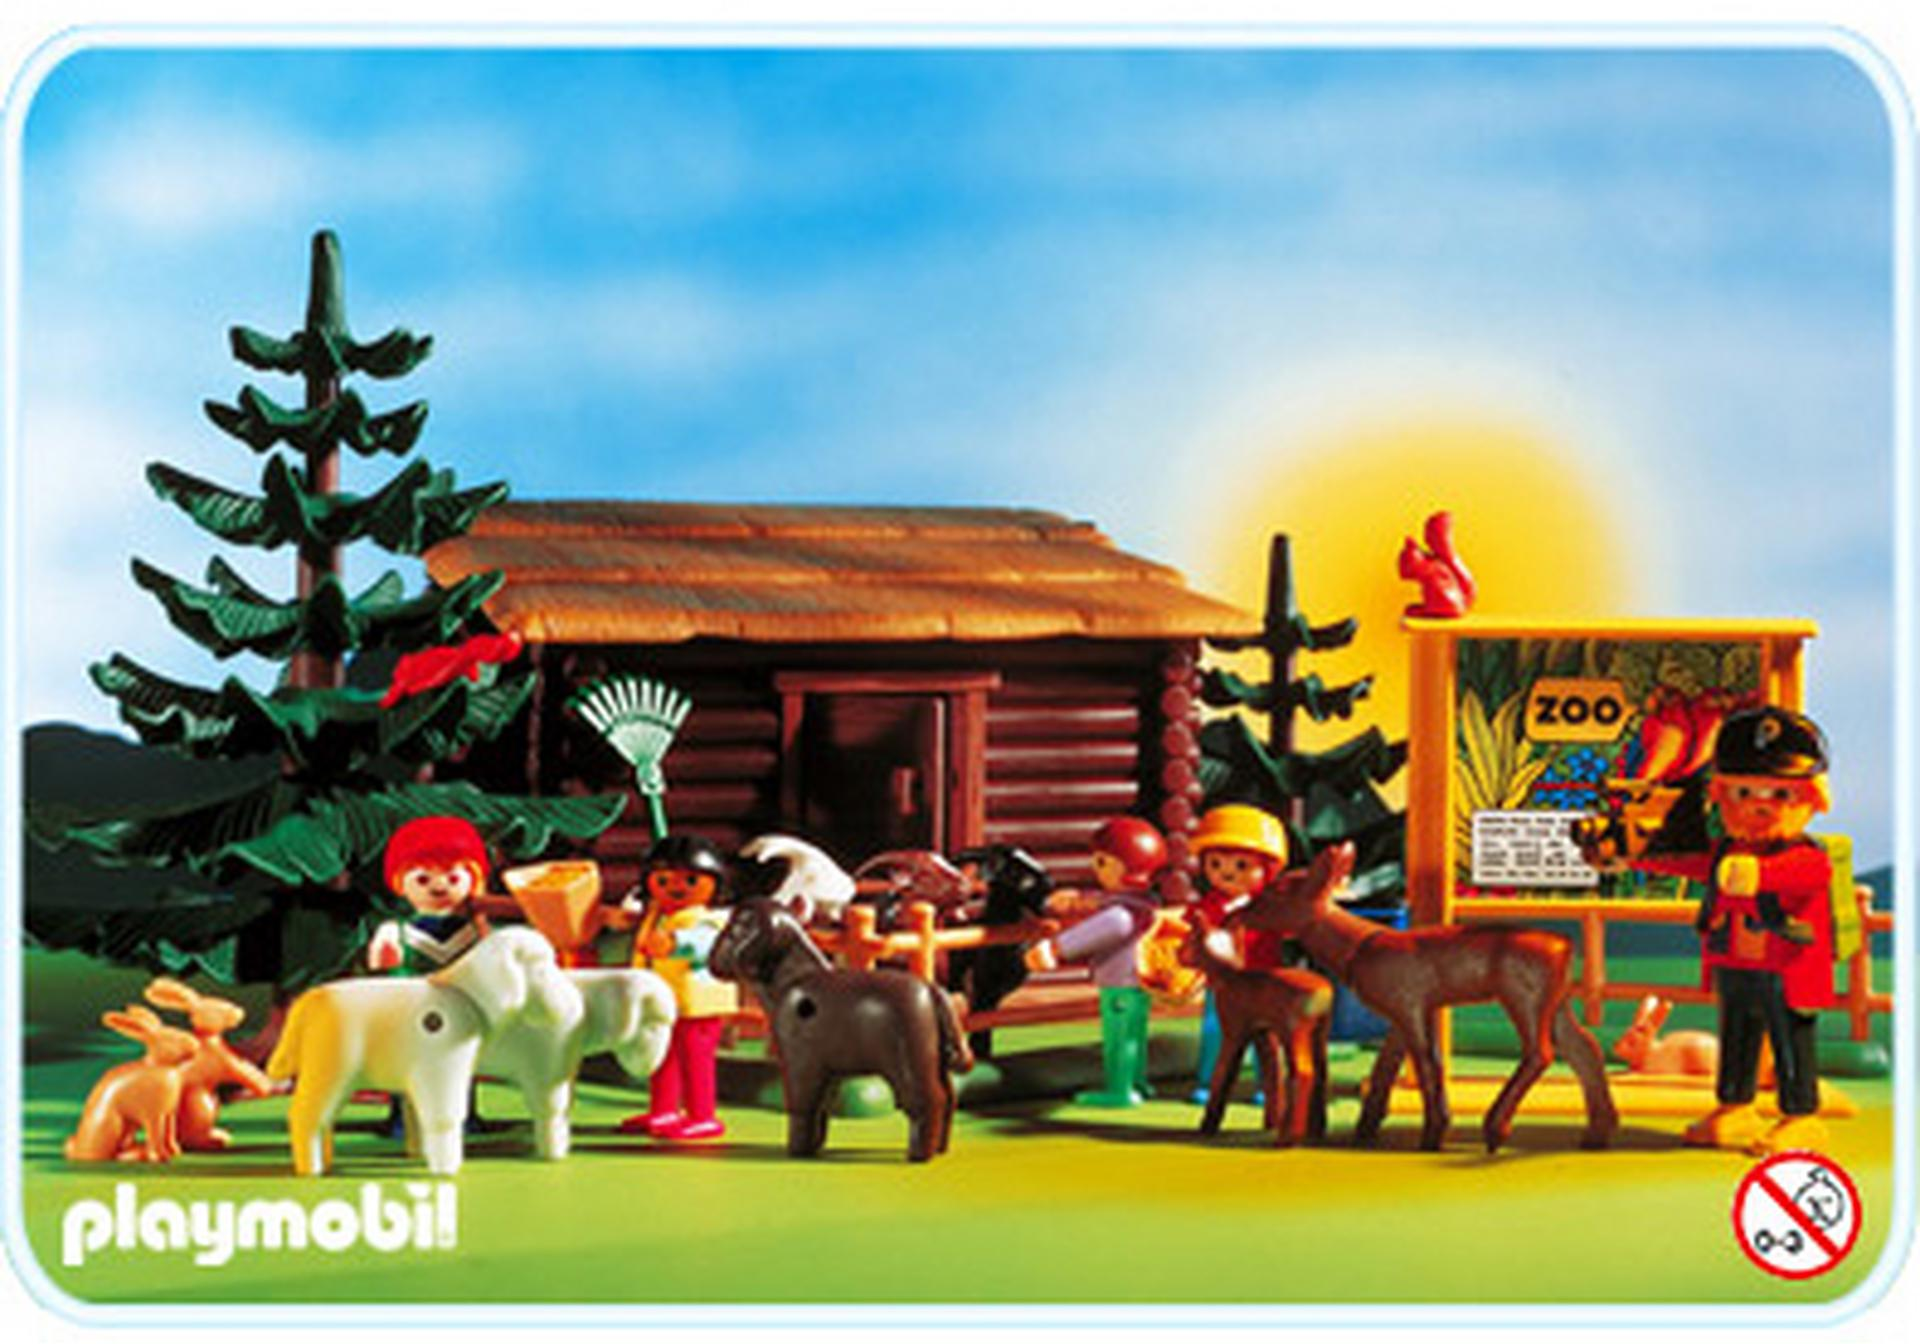 zoo animaux domestiques 3638 a playmobil france. Black Bedroom Furniture Sets. Home Design Ideas